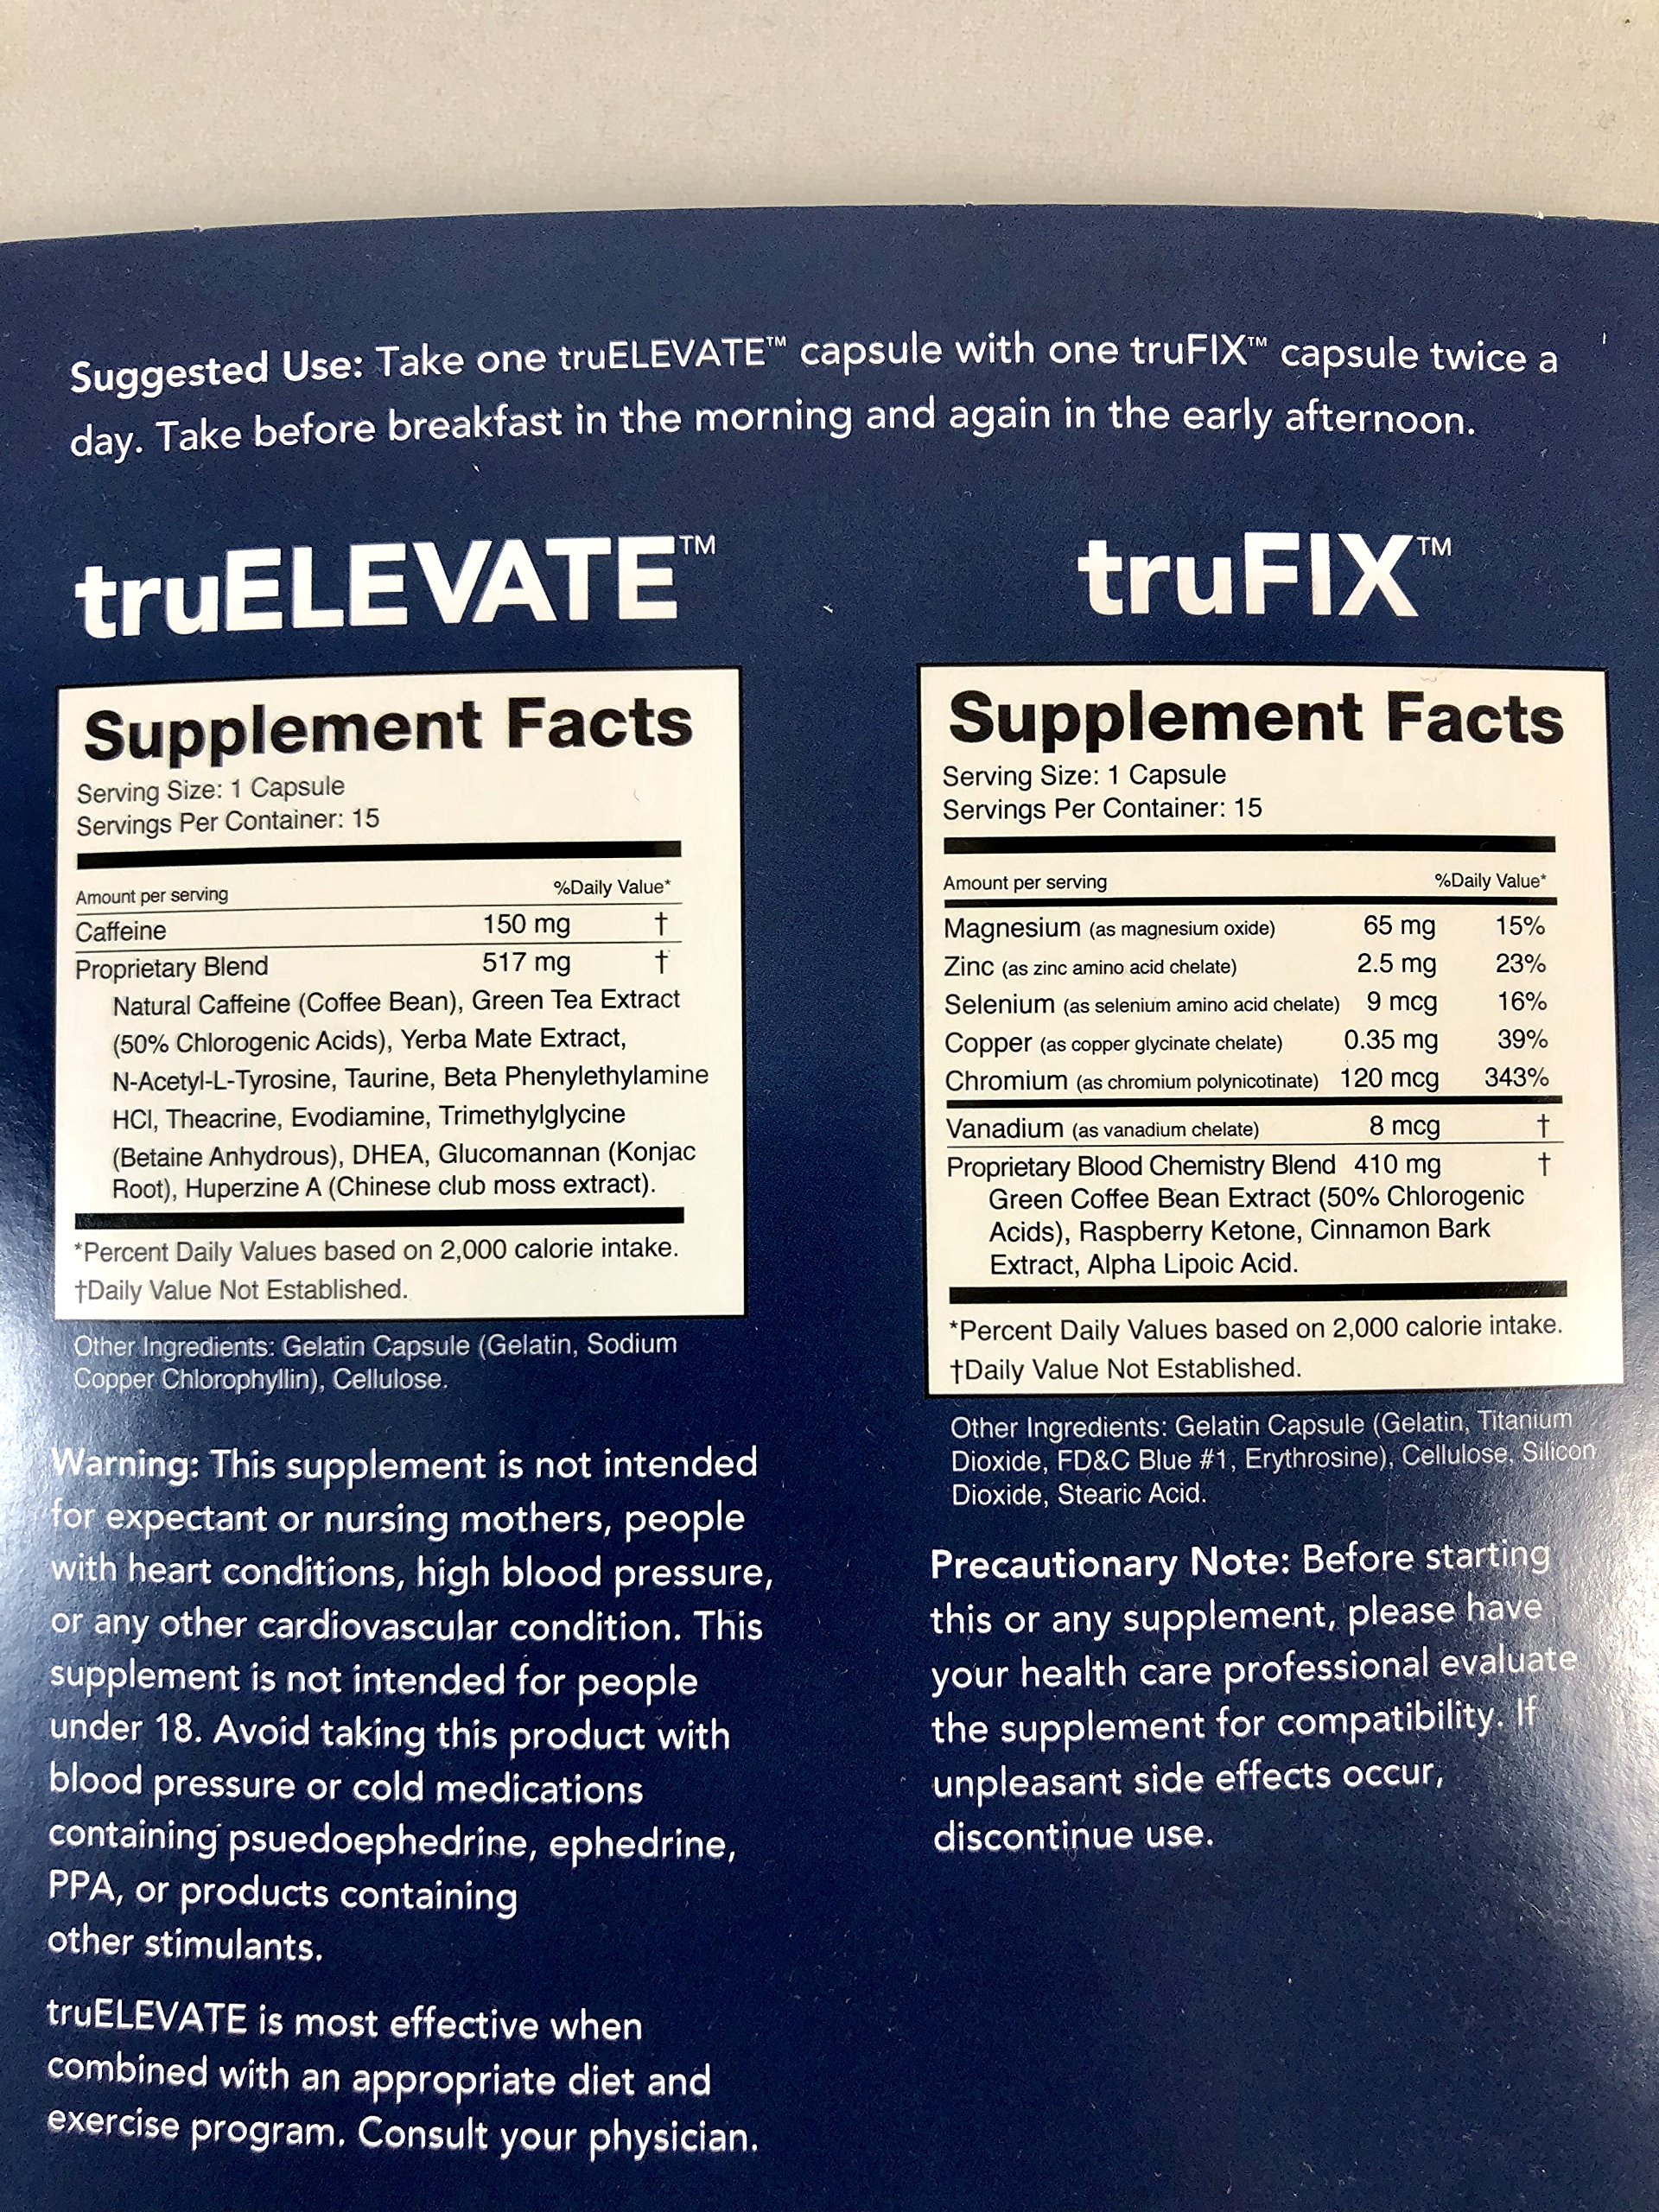 Truvision Weight Loss Trufix/Truelevate 30 Day Supply (120 Pills) #1 Weight Management Supplement Products Includes a 30 Days Physical Food Journal to Help Organize Your Diet by TruVision (Image #3)